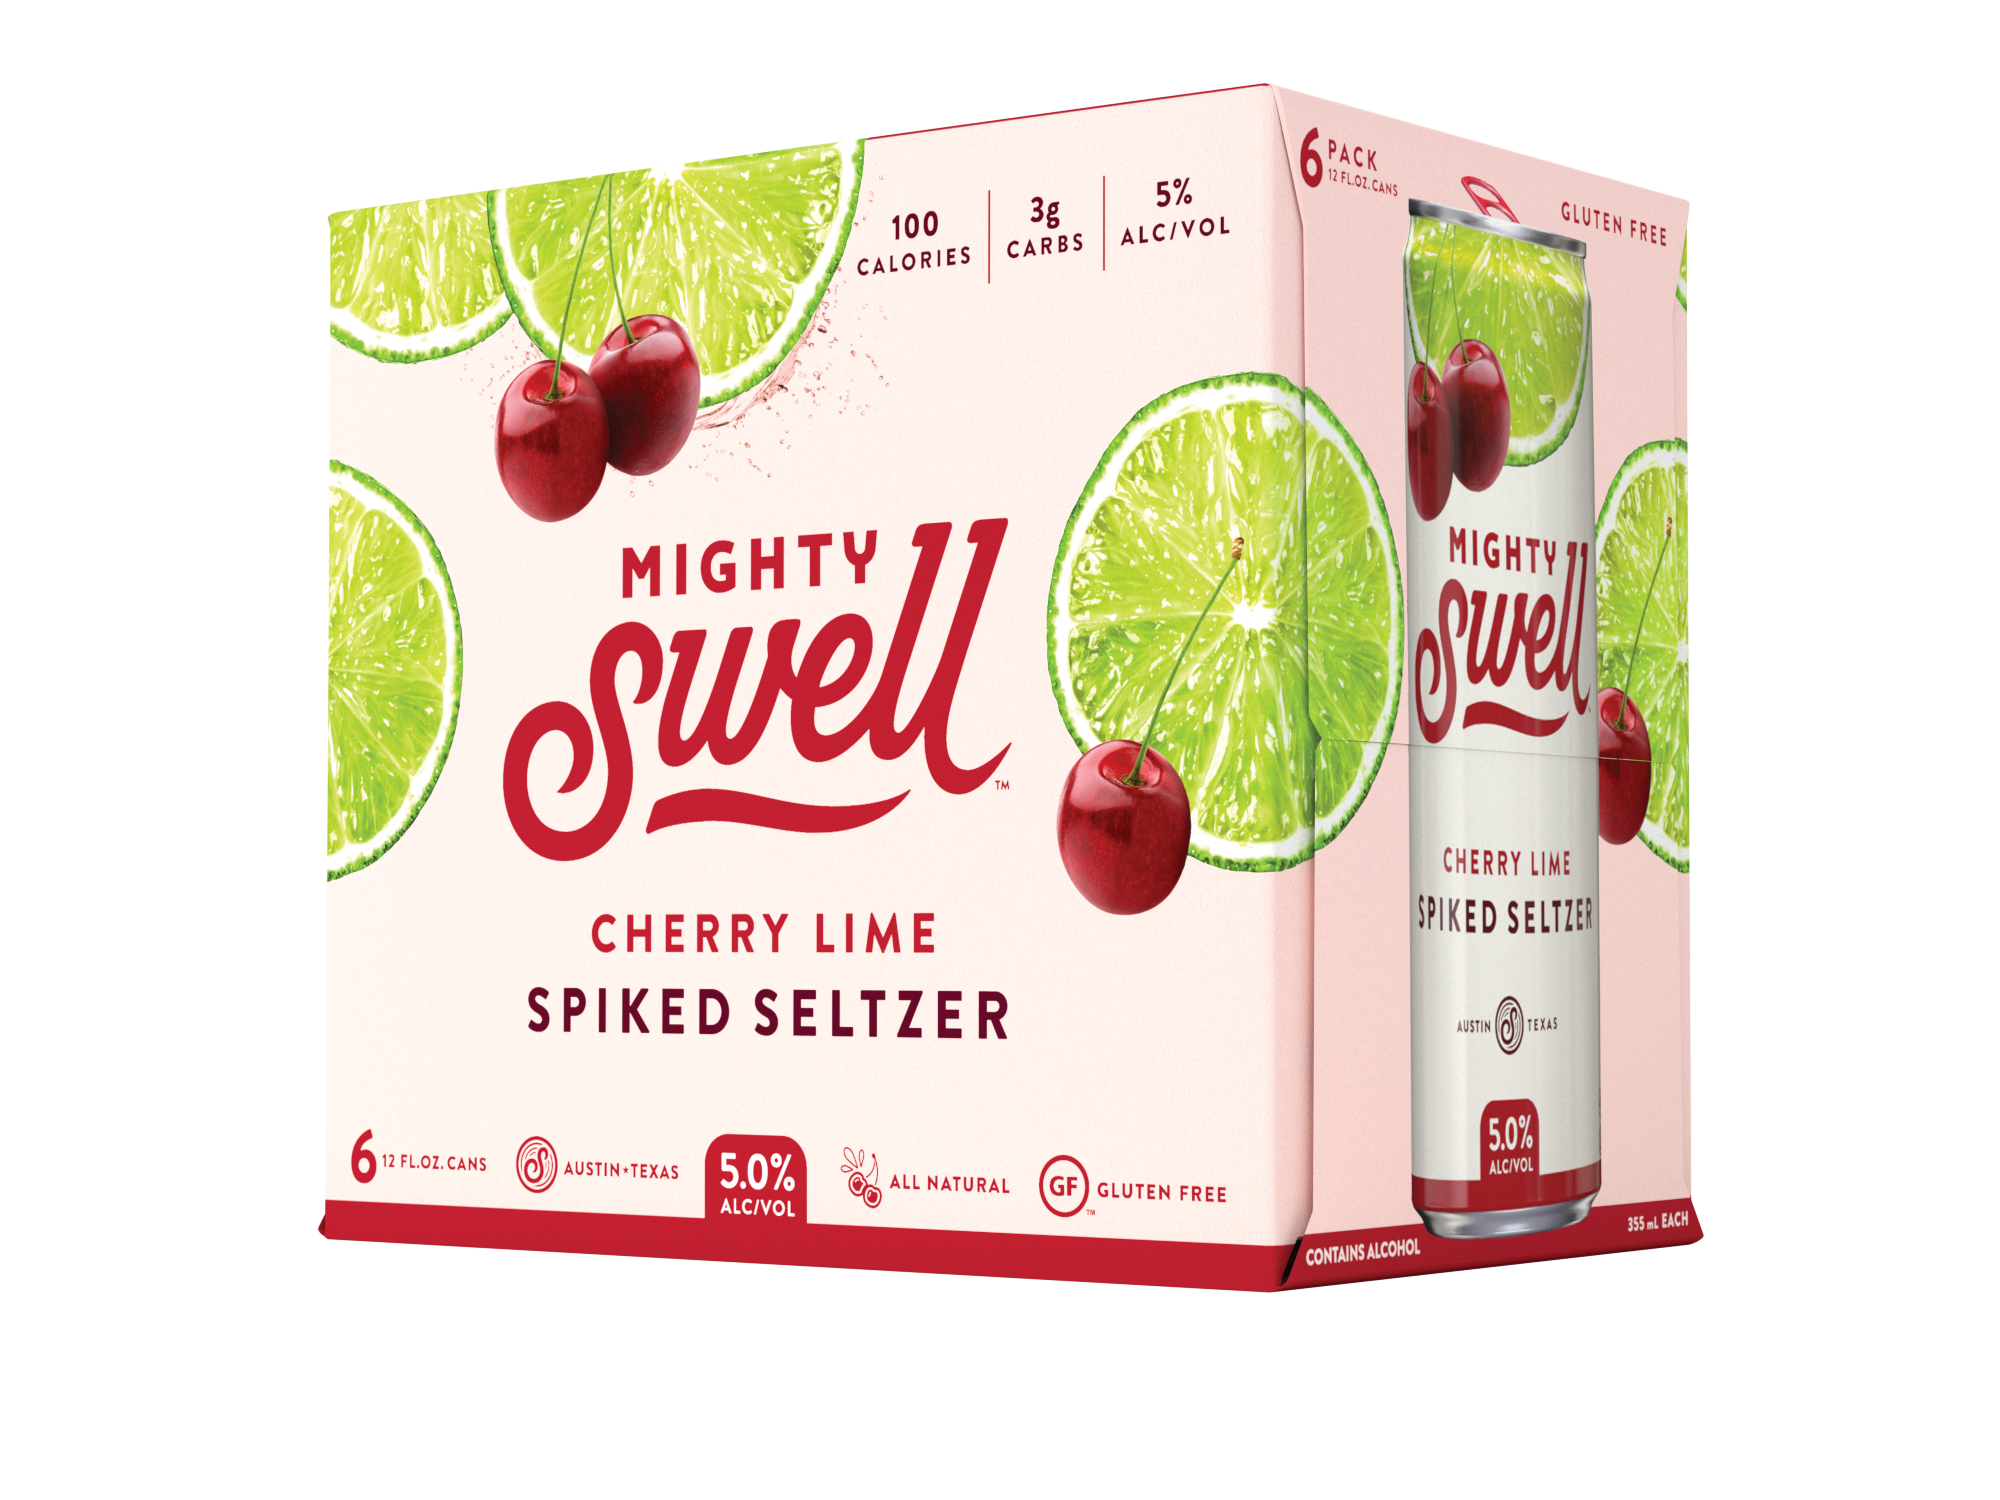 Mighty Swell Cherry Lime Spiked Seltzer | 6 Pack